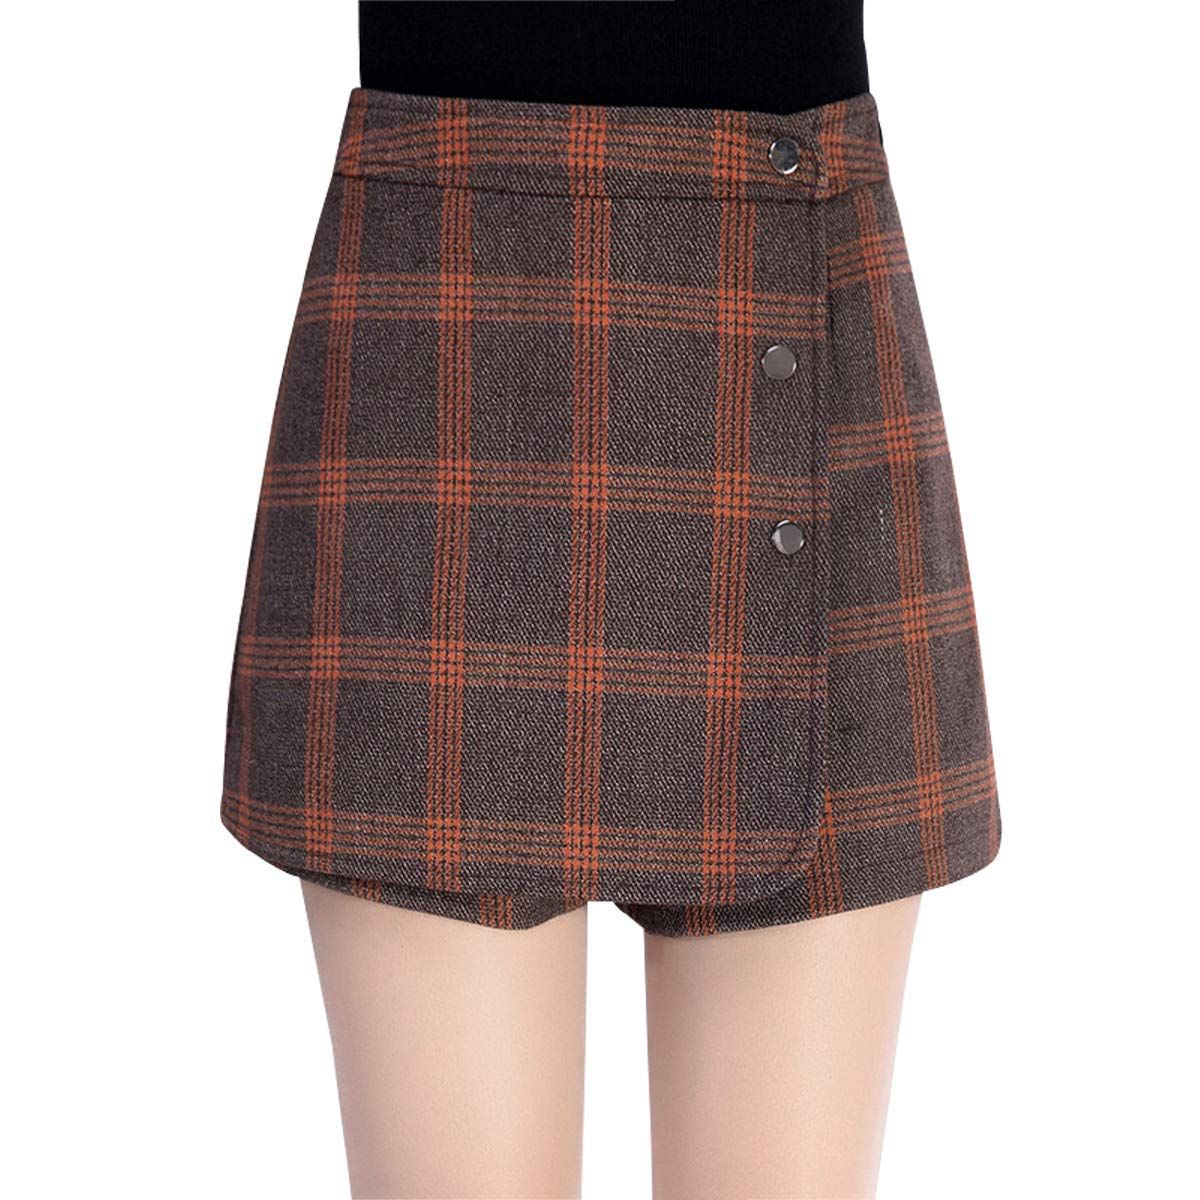 Wincolor Women's High-Rise Plaid Checked Wool A-line Shorts Mini Culottes Pantskirts